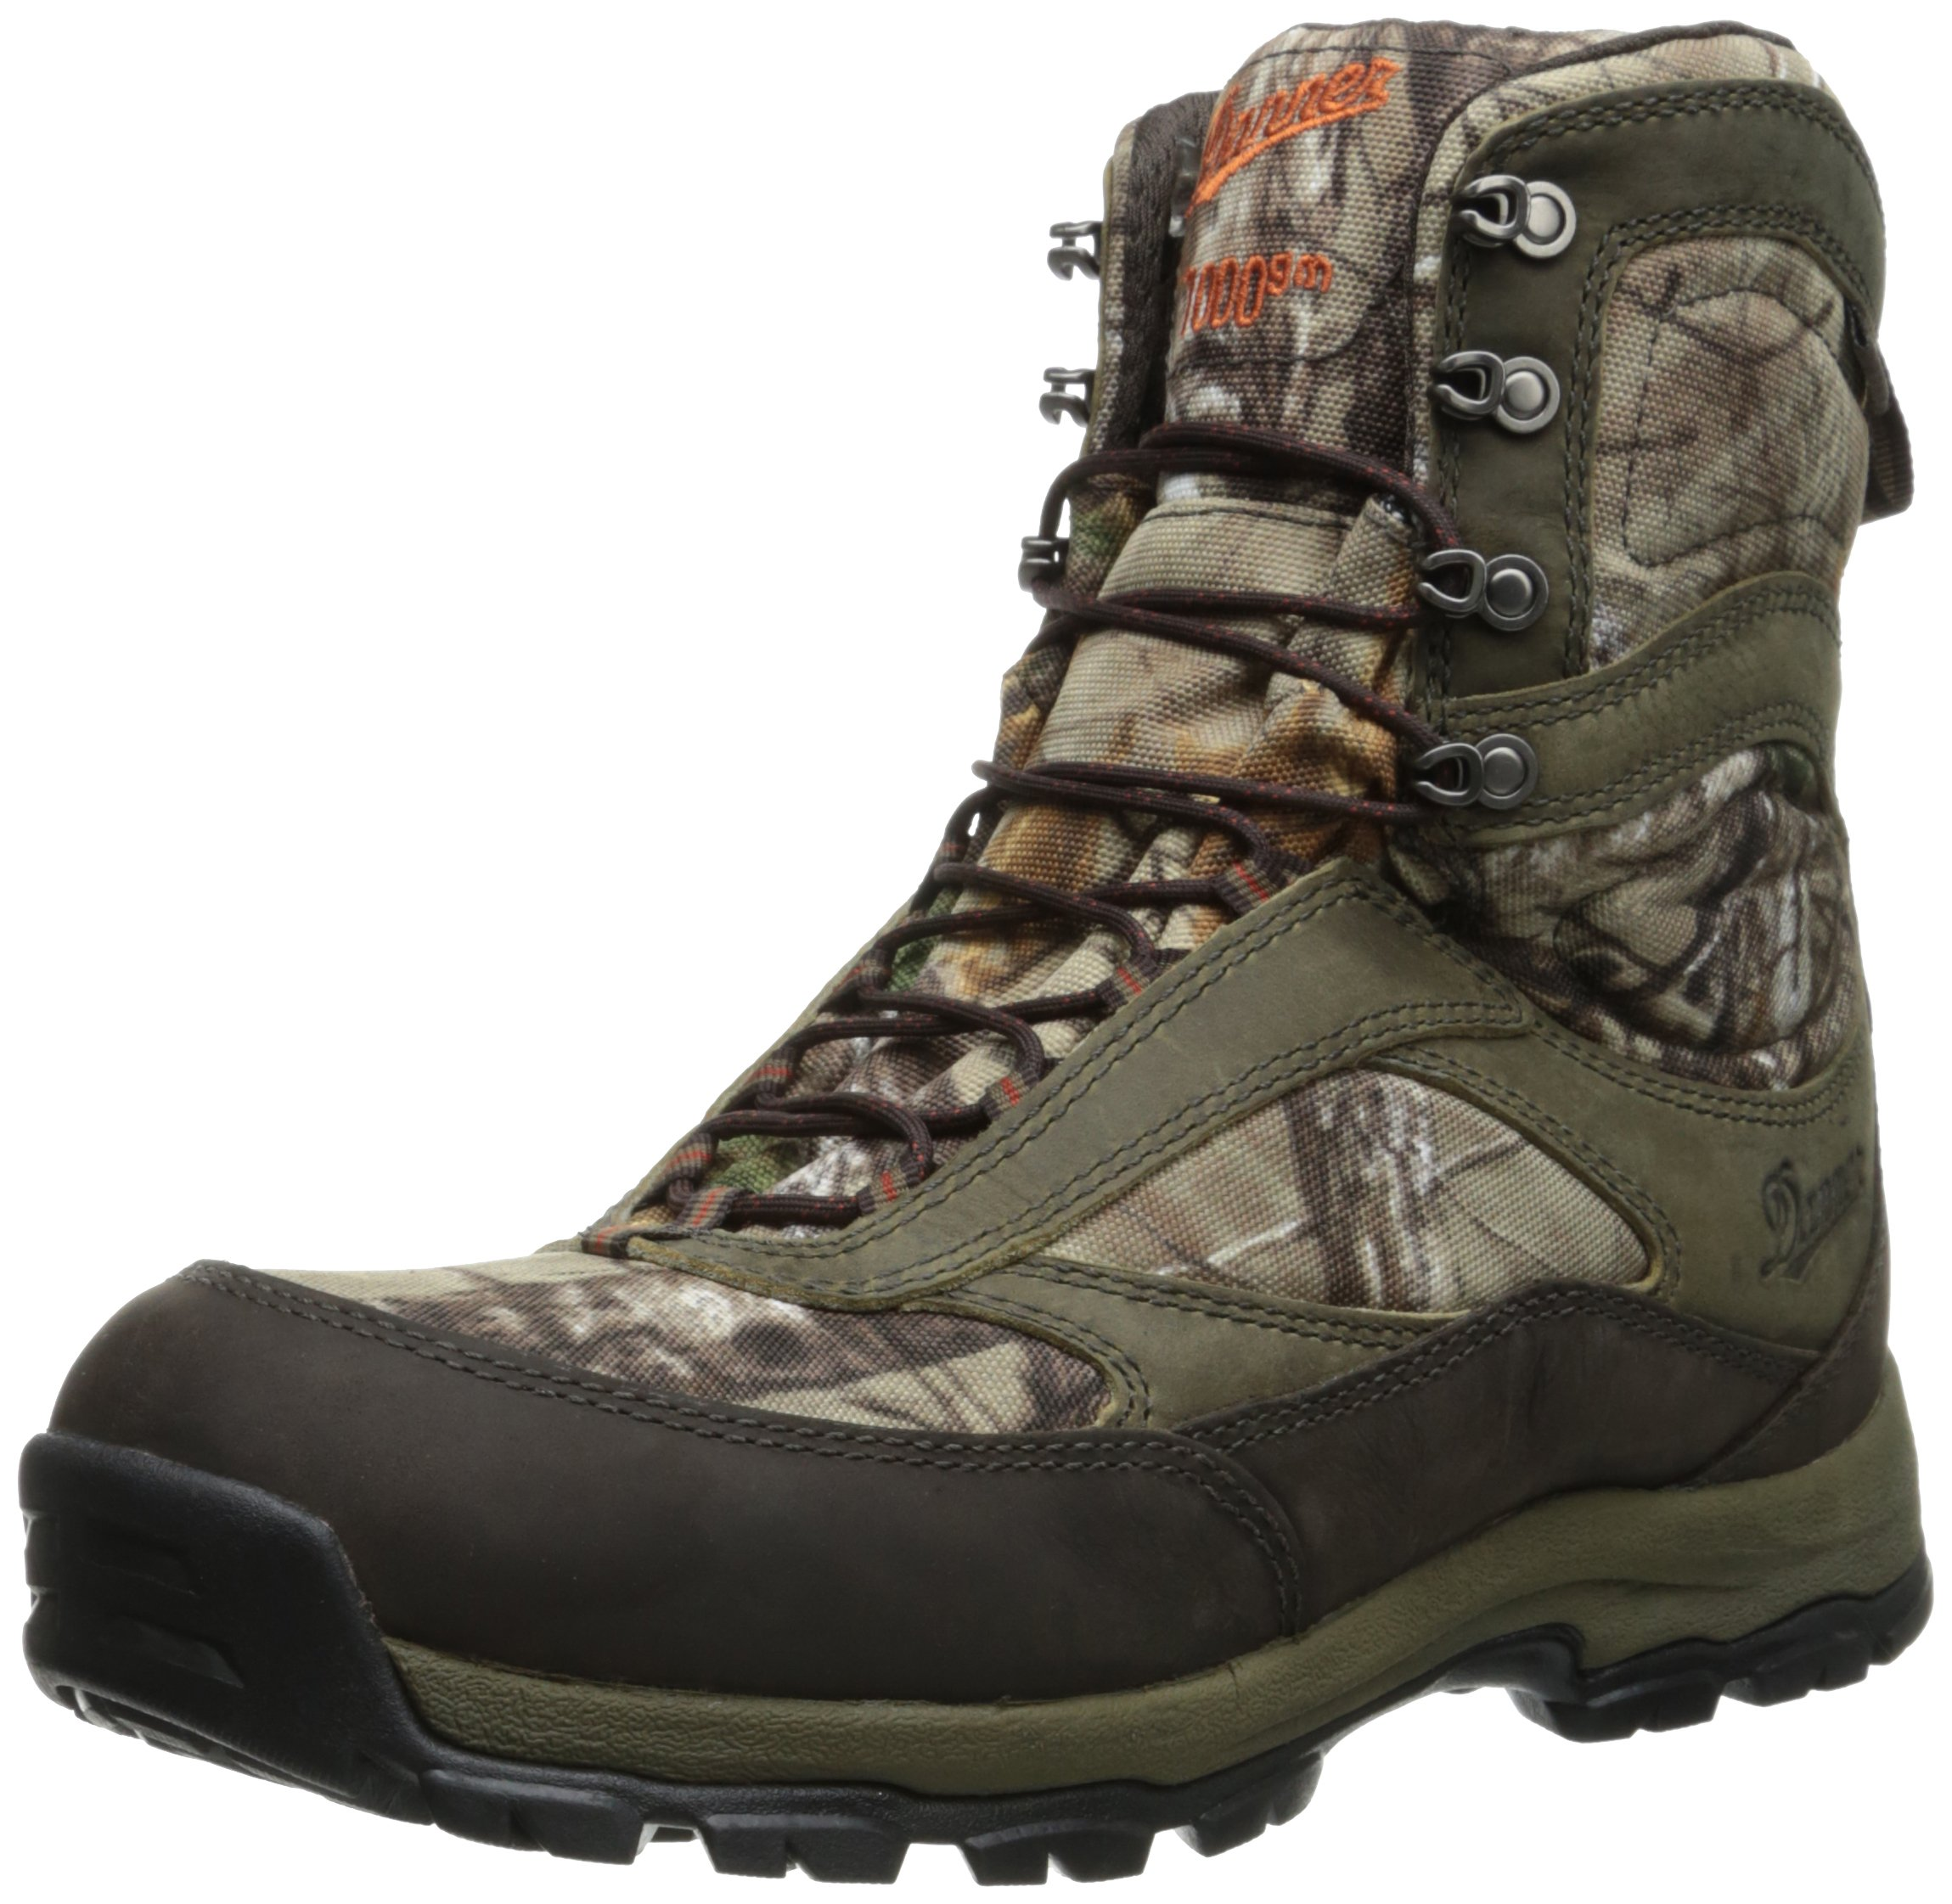 Danner Women's High Ground Realtree Xtra Hunting Boot,Brown/Green,10 M US by Danner